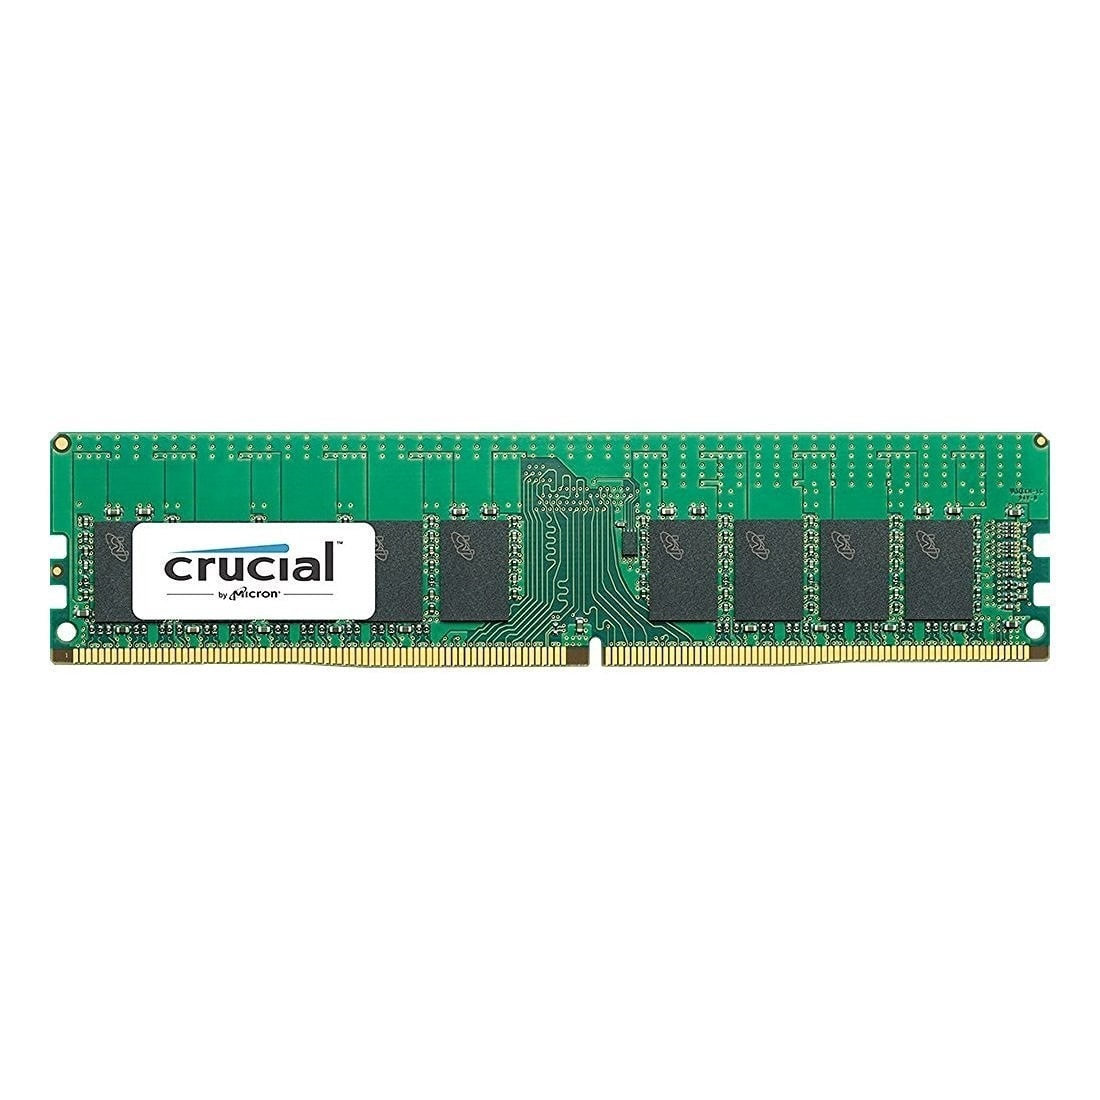 Crucial 8gb Ddr4 Sdram Memory Module 8 Gb 2400 Mhz Micron Pc4 2400t Sodimm 19200 120 V Ecc Registered 28 Free Shipping Today